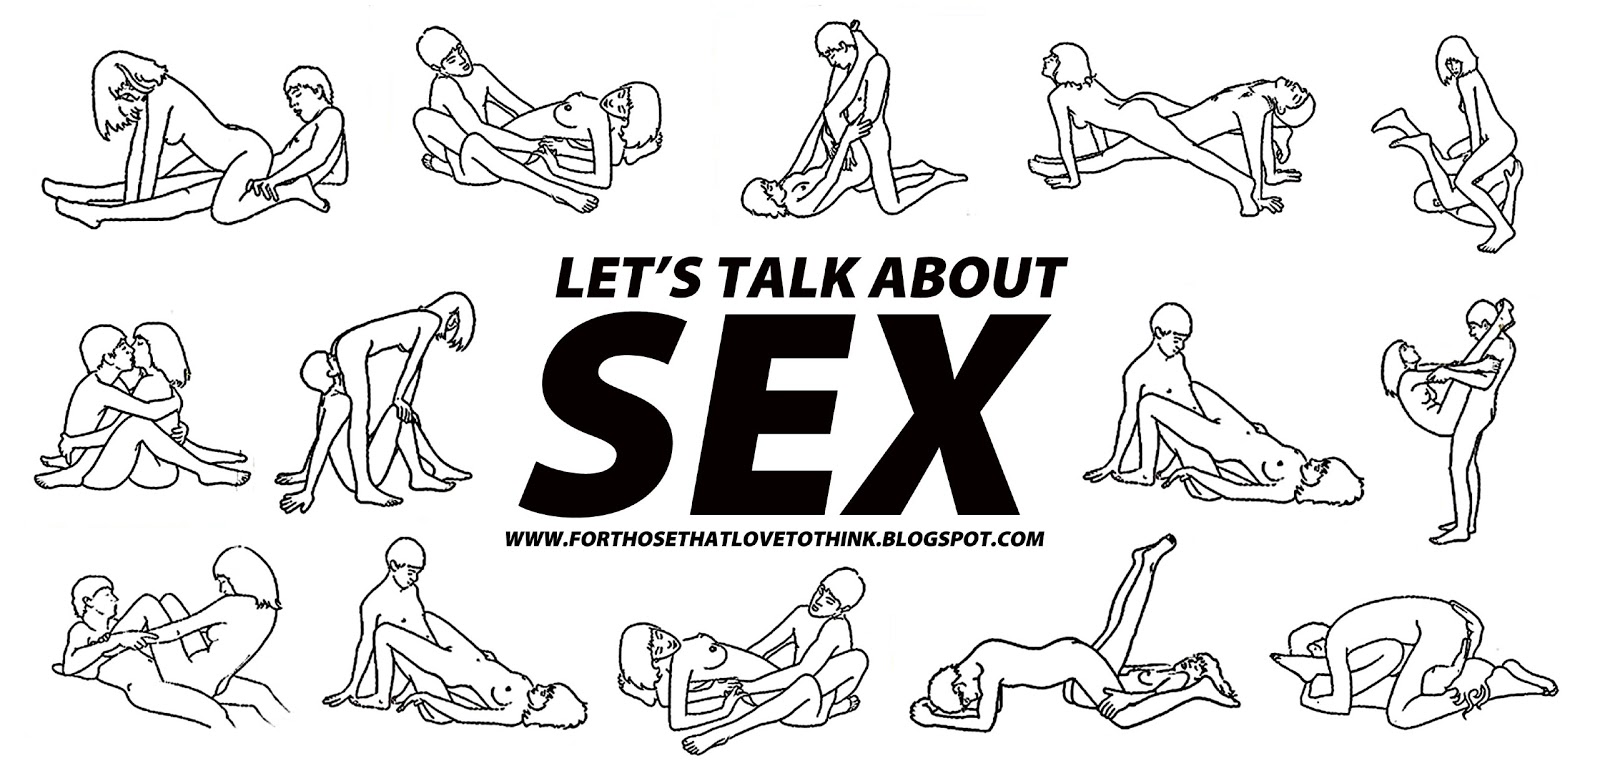 Sex positions froggy style